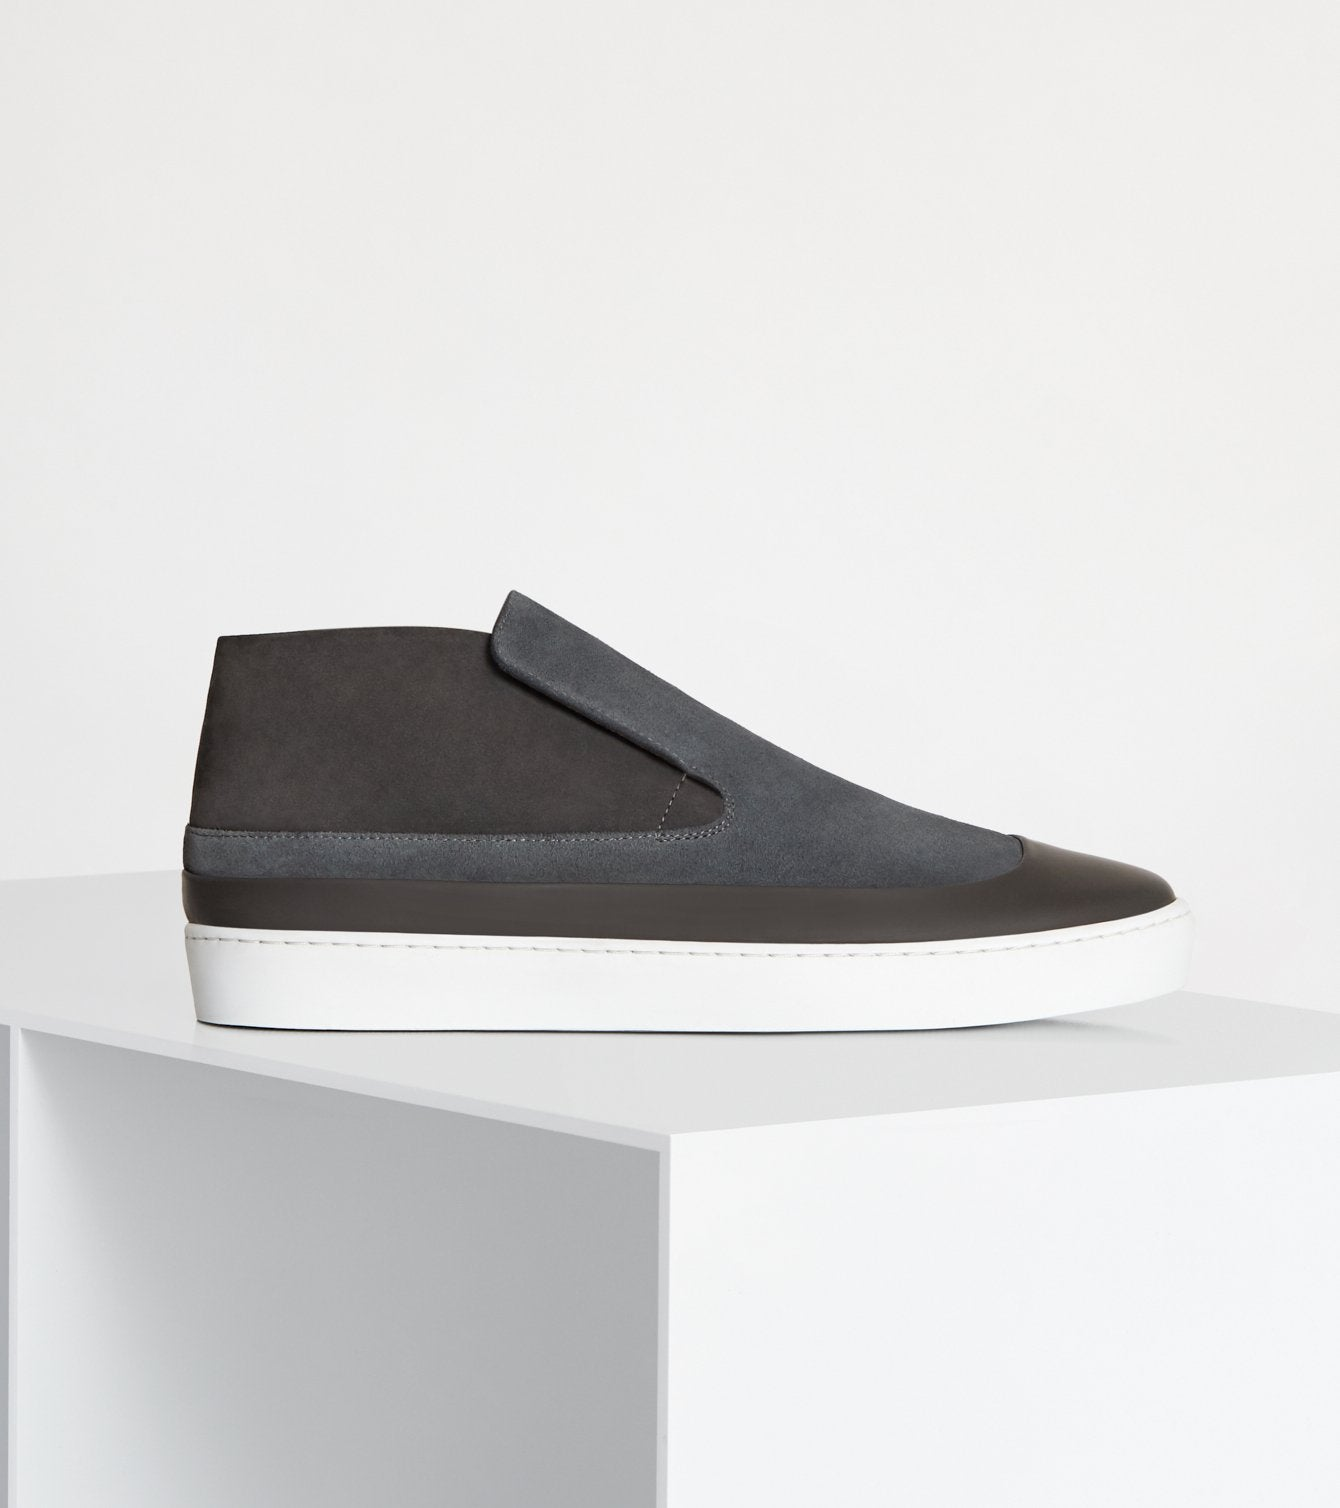 dark-gray-suede-nubuck